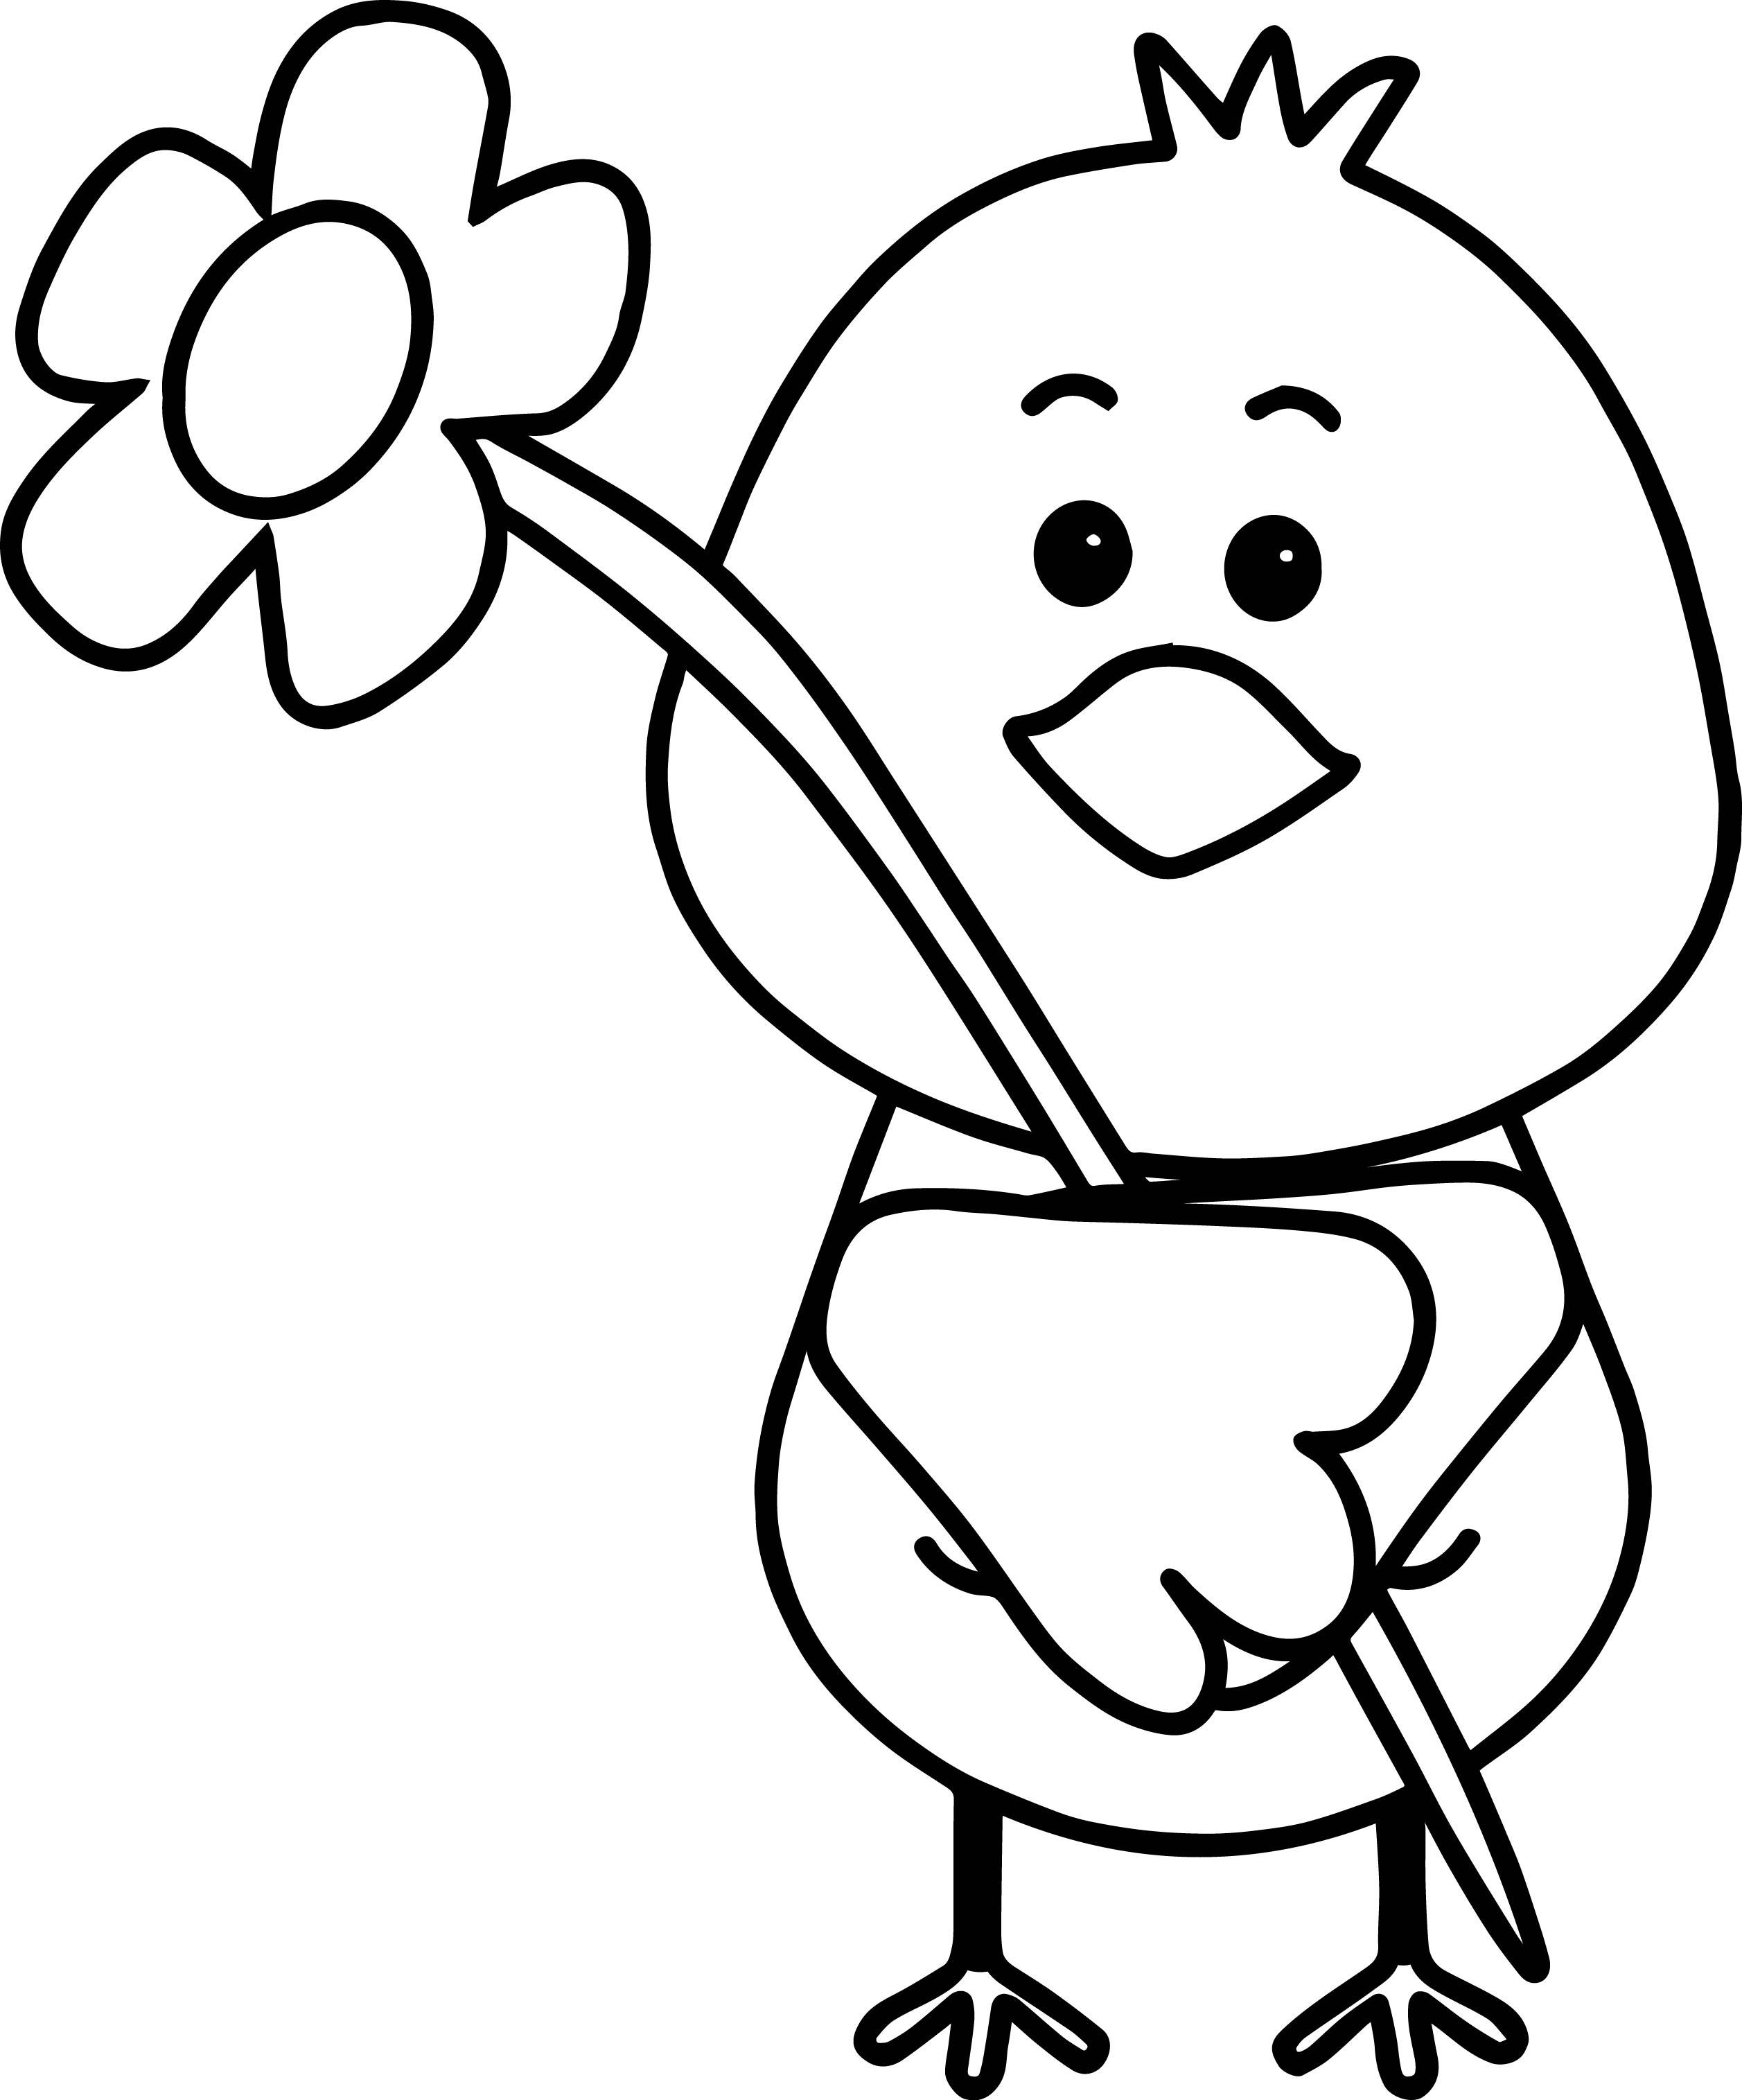 Bluebird Coloring Page Coloring Coloring Pages